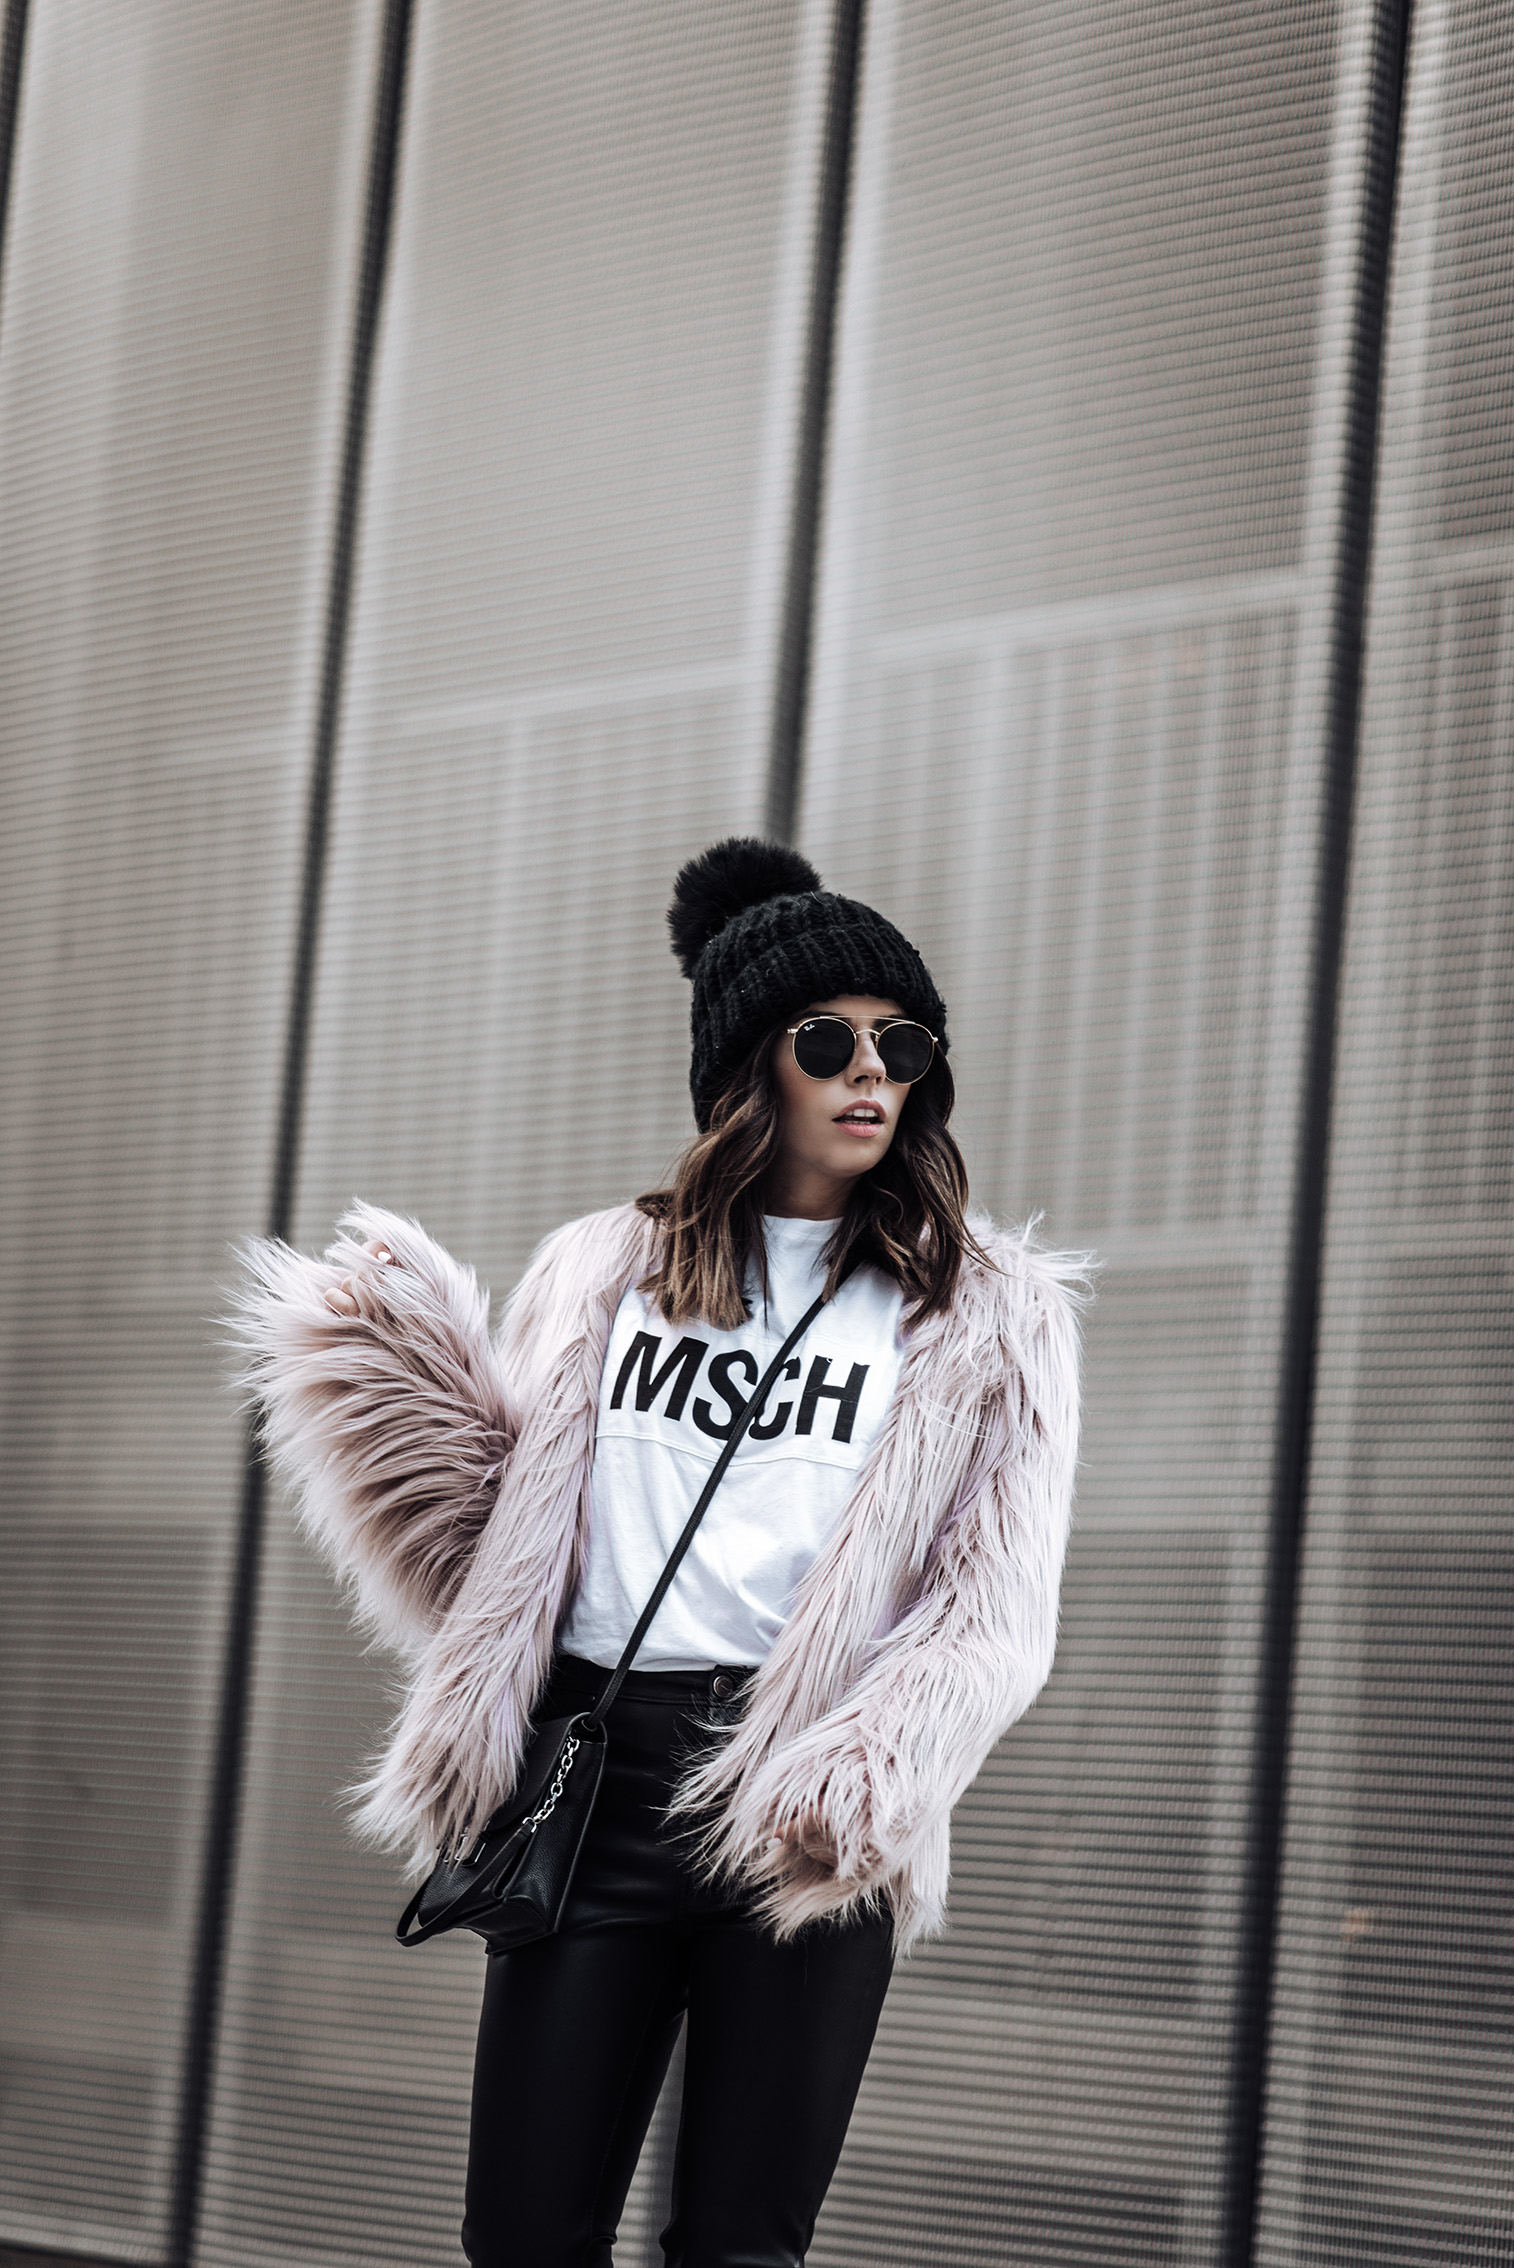 Click to shop the look: Pop of pink | Pink Unreal Fur Coat | MSCH T Shirt | The Principle Mid Rise Vegan Leather Skinny Jeans | {C/O} Henri Bendle Peru Bag | Vans Old Skool sneakers #streetstyle